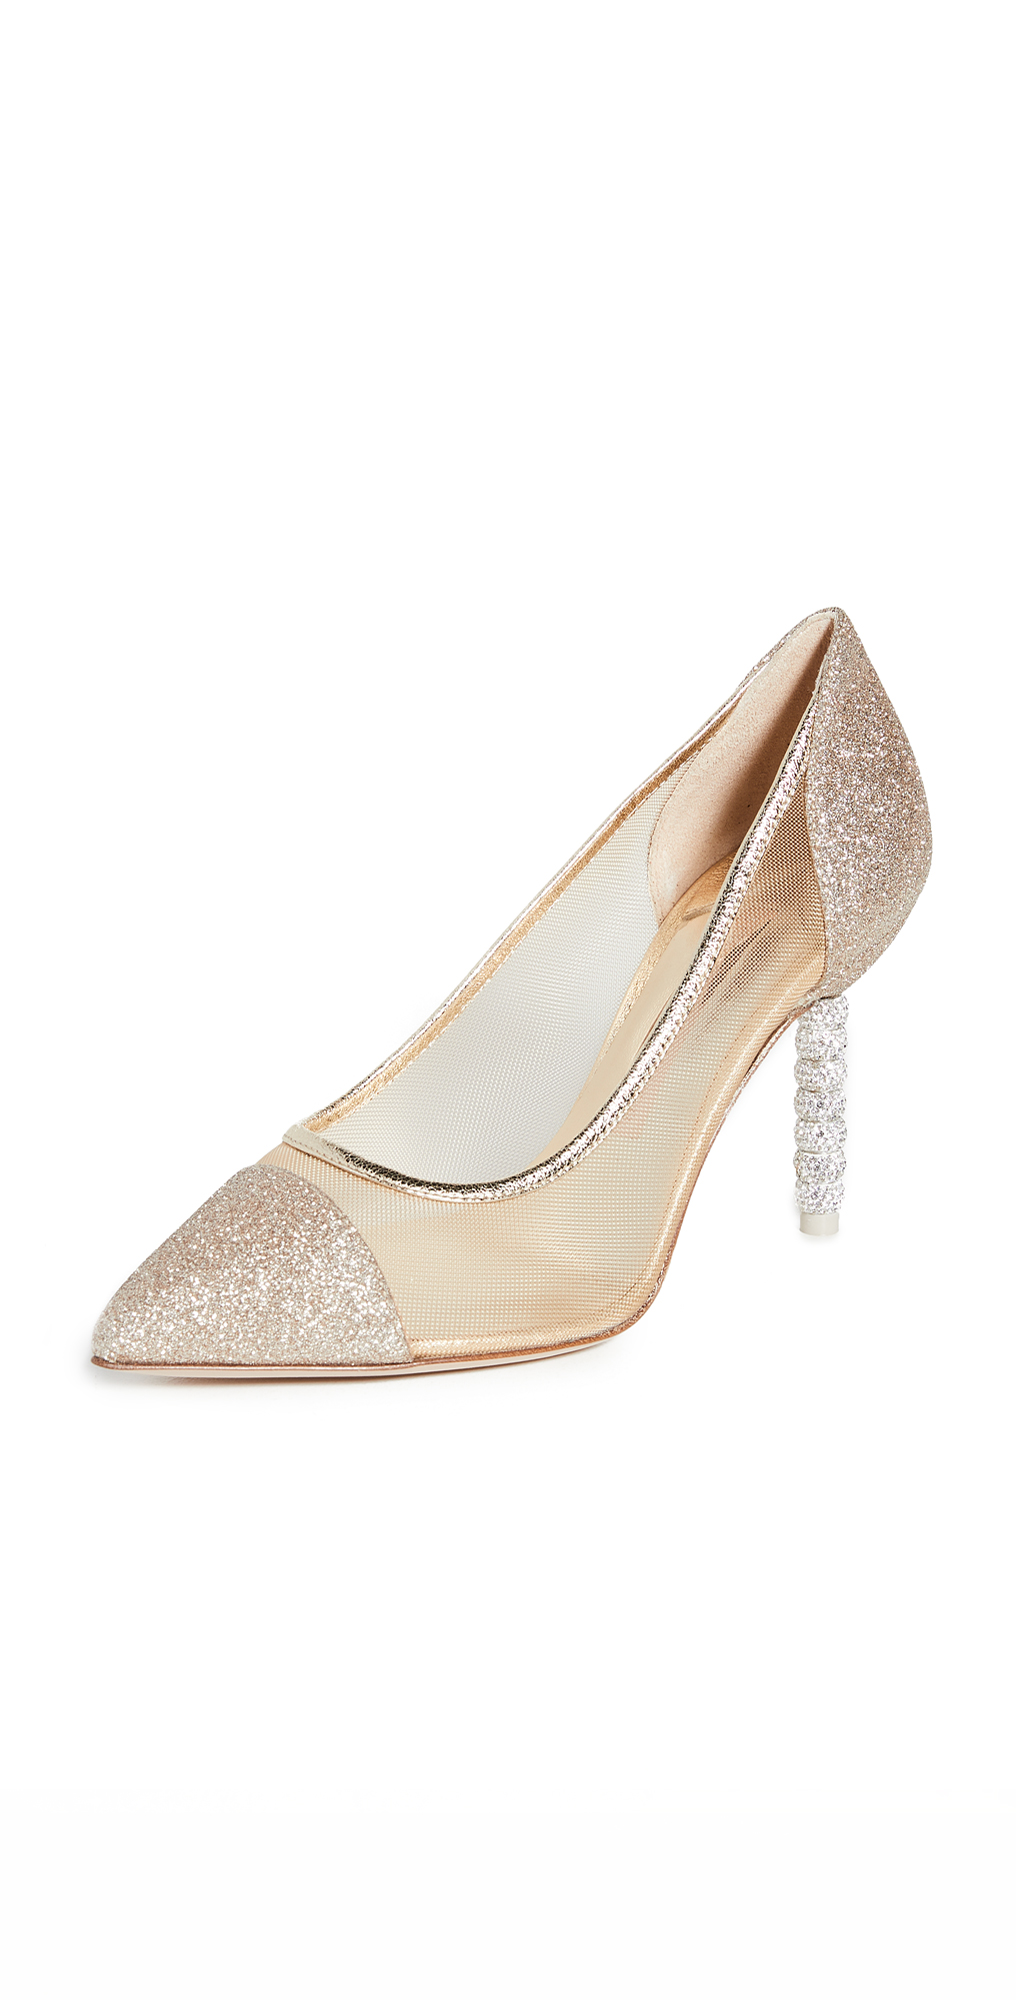 Sophia Webster Jasmine Crystal Mid Pumps